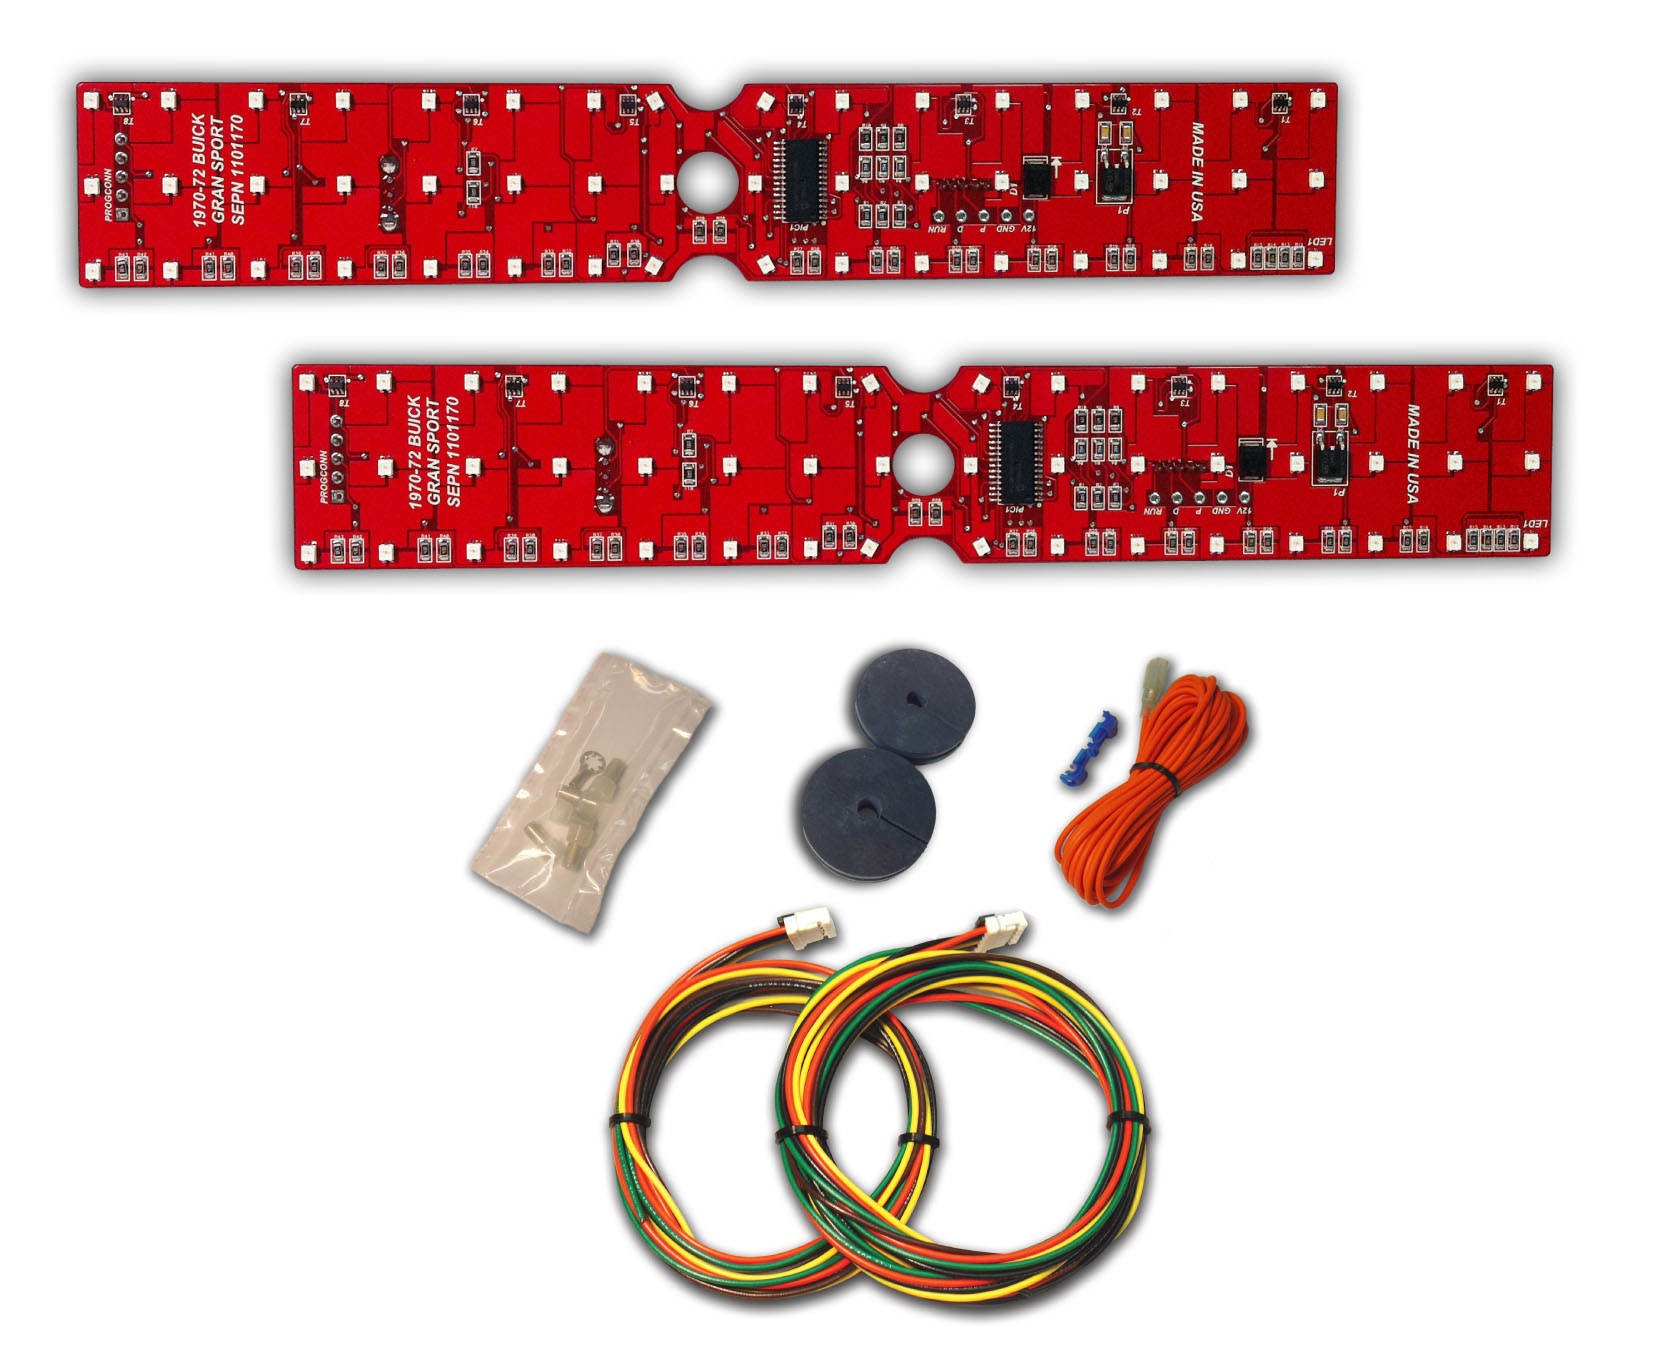 1972 Buick Skylark Gran Sport Led Tail Light Panels Digi Tails Corvette Dash Wiring Diagram